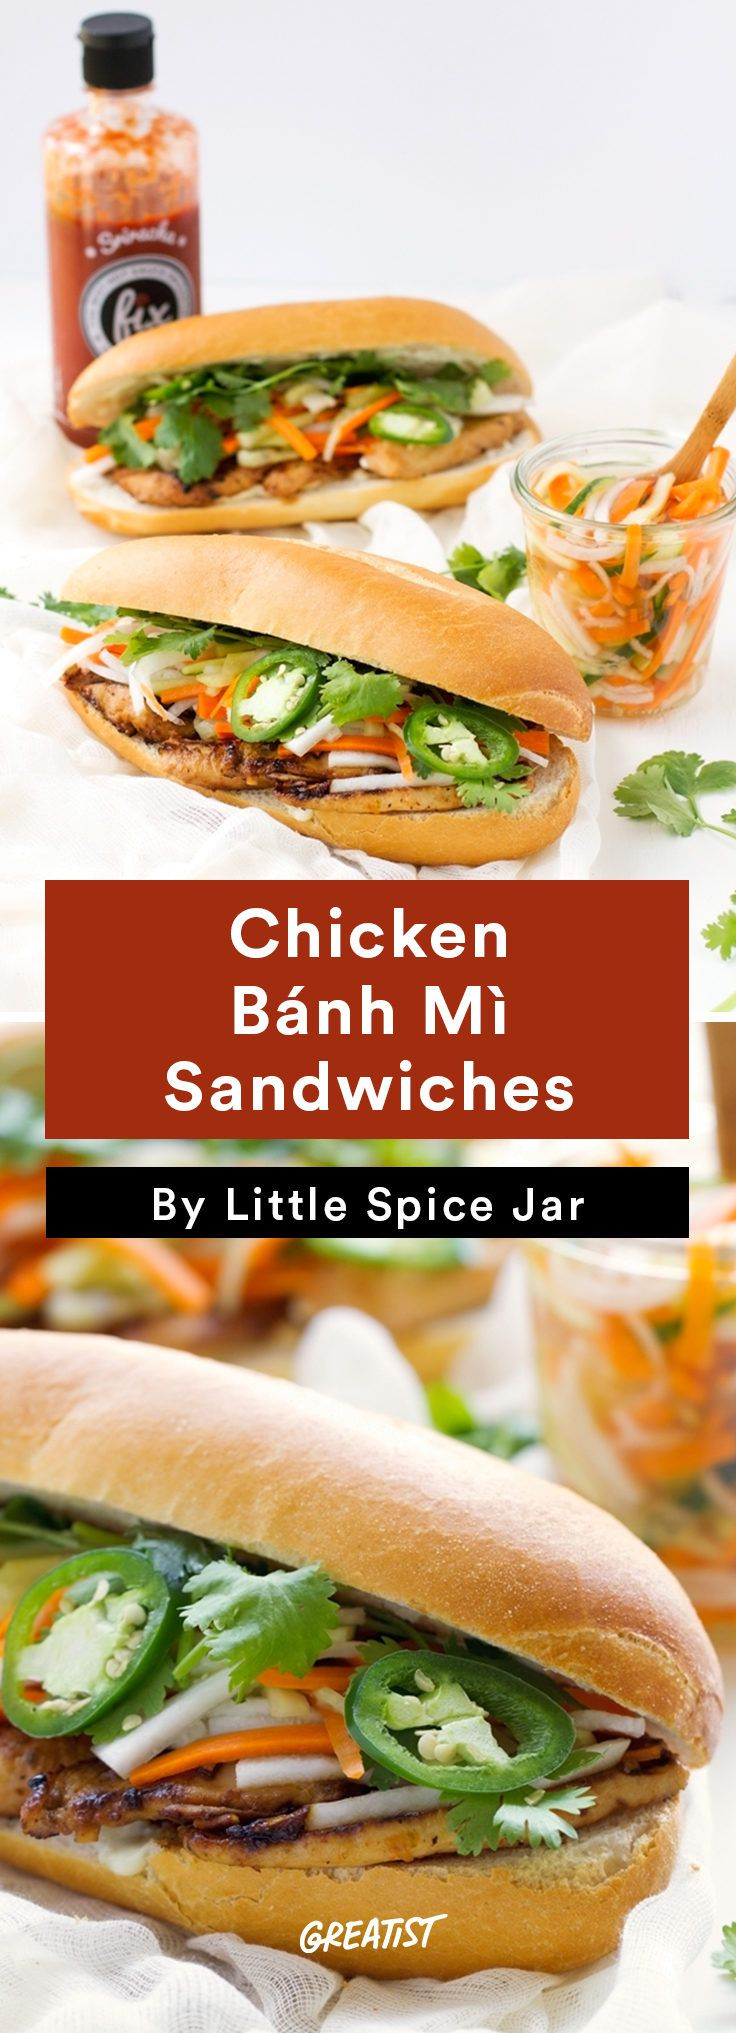 9 street food recipes for when theres no truck in sight street chicken bnh m sandwiches healthy homemade streetfood httpgreatisteatstreet food recipes to make at home forumfinder Choice Image